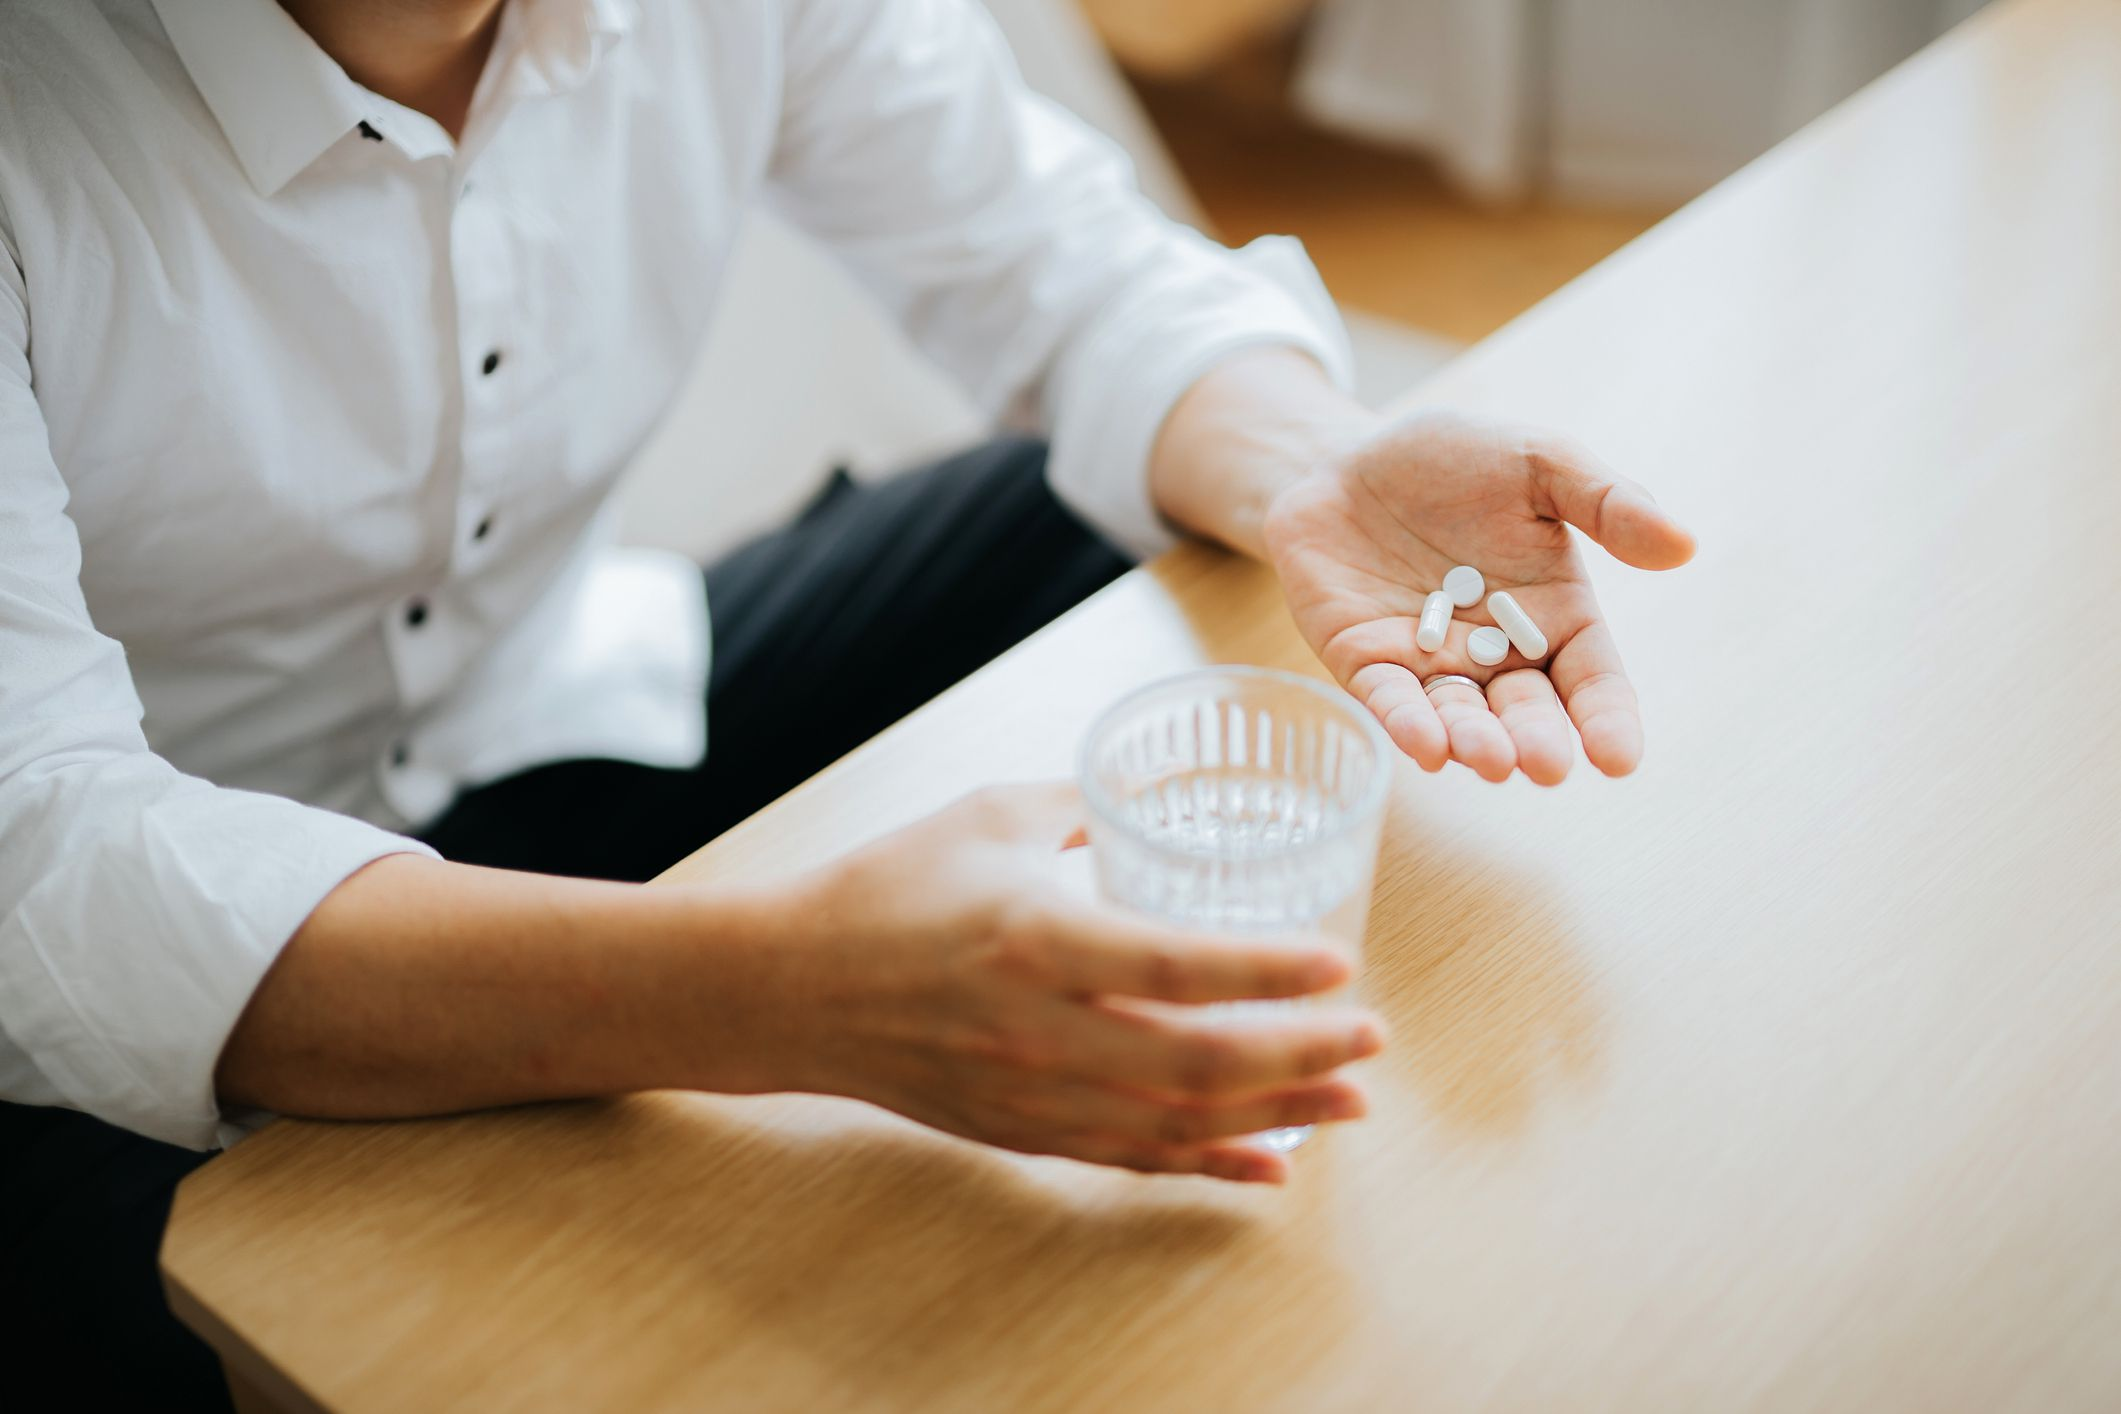 Close up of man holding a glass of water and medication in his hand